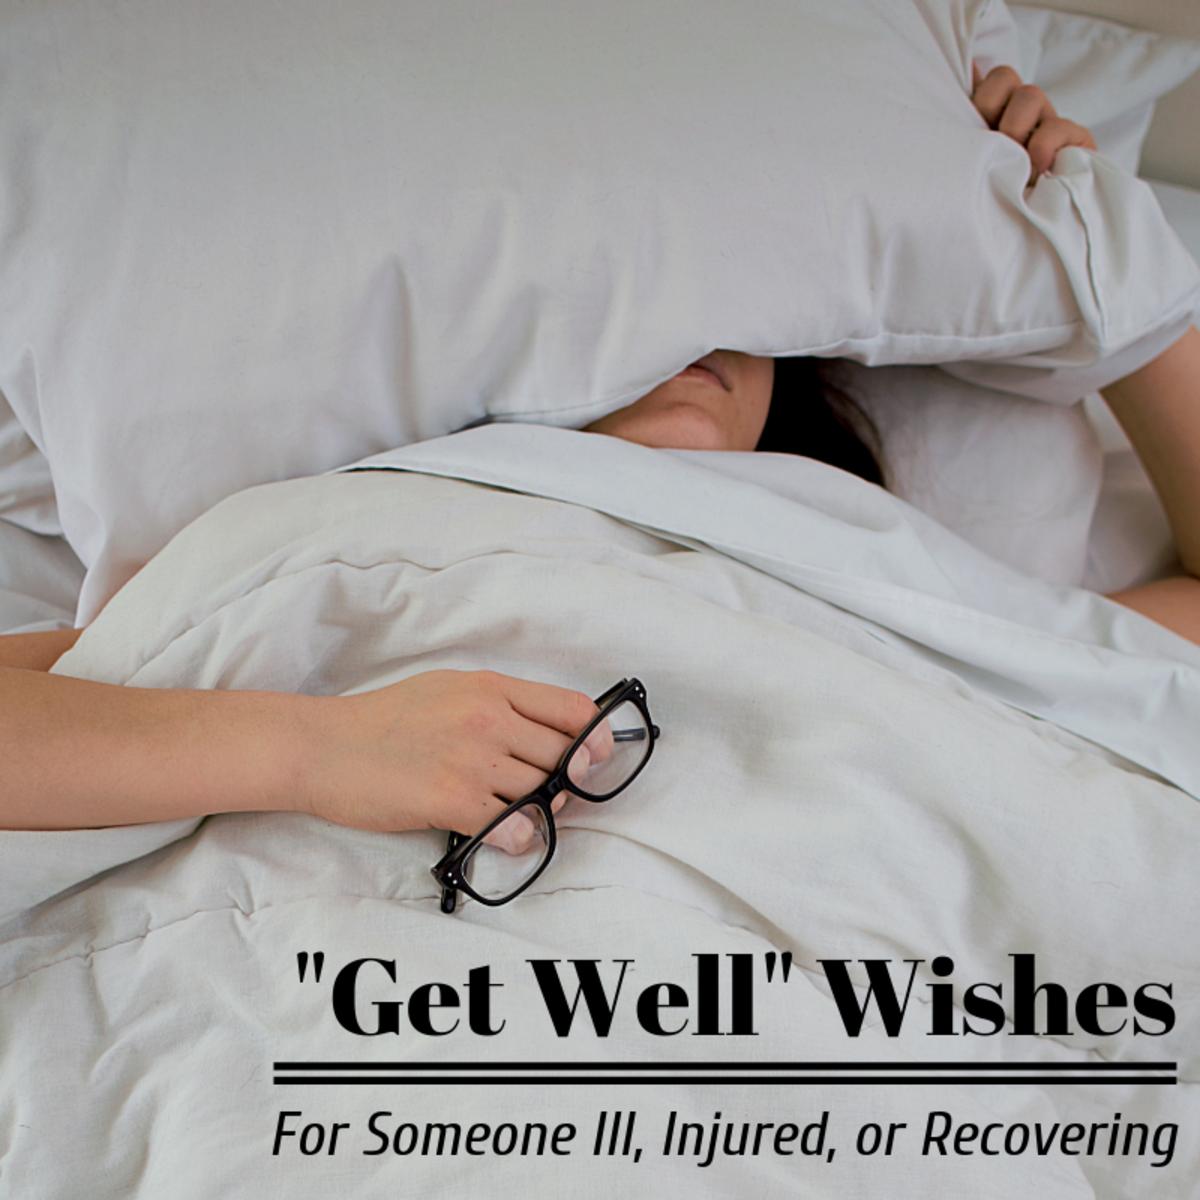 When someone is recovering from an illness or injury, preparing to have surgery, or suffering from an ongoing ailment, a little reassurance can go a long way.